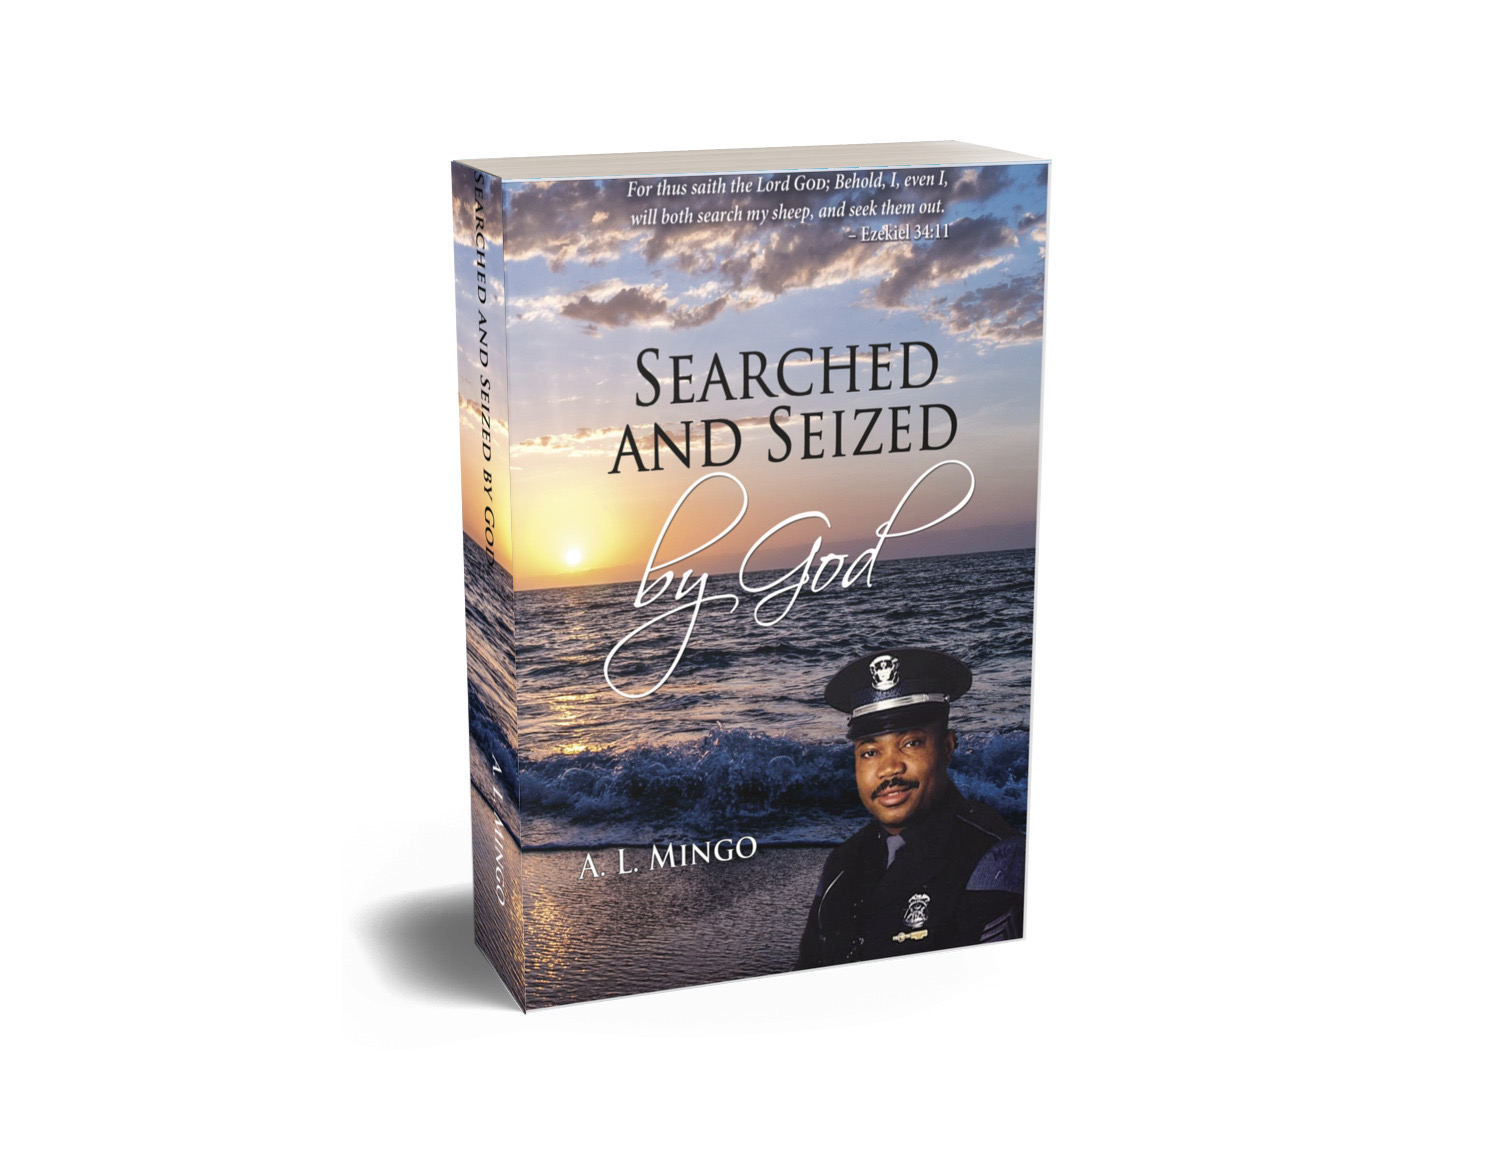 Searched and Seized By God